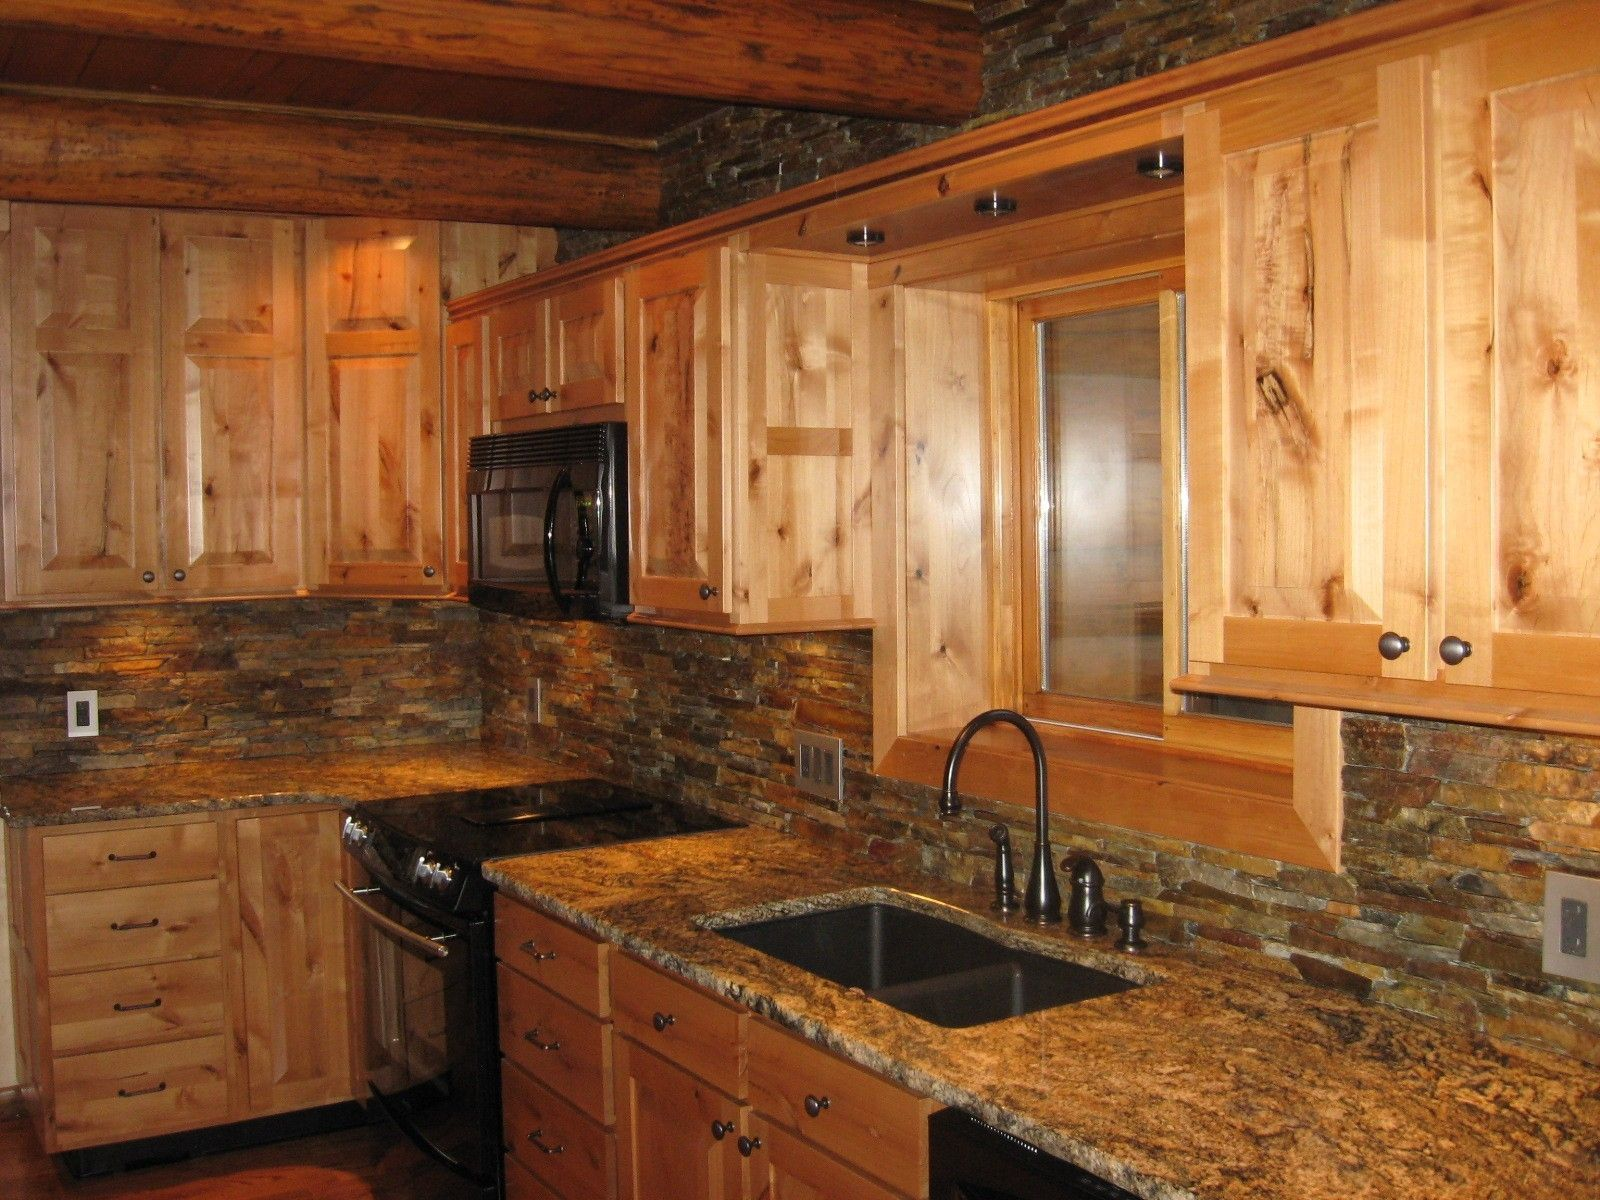 Knotty pine kitchen ceiling my vintage kitchen ideas - Knotty Alder Cabinets Has Been Featured In Many Design Magazines And Home Shows Recently Because Of Knotty Alder Kitchenknotty